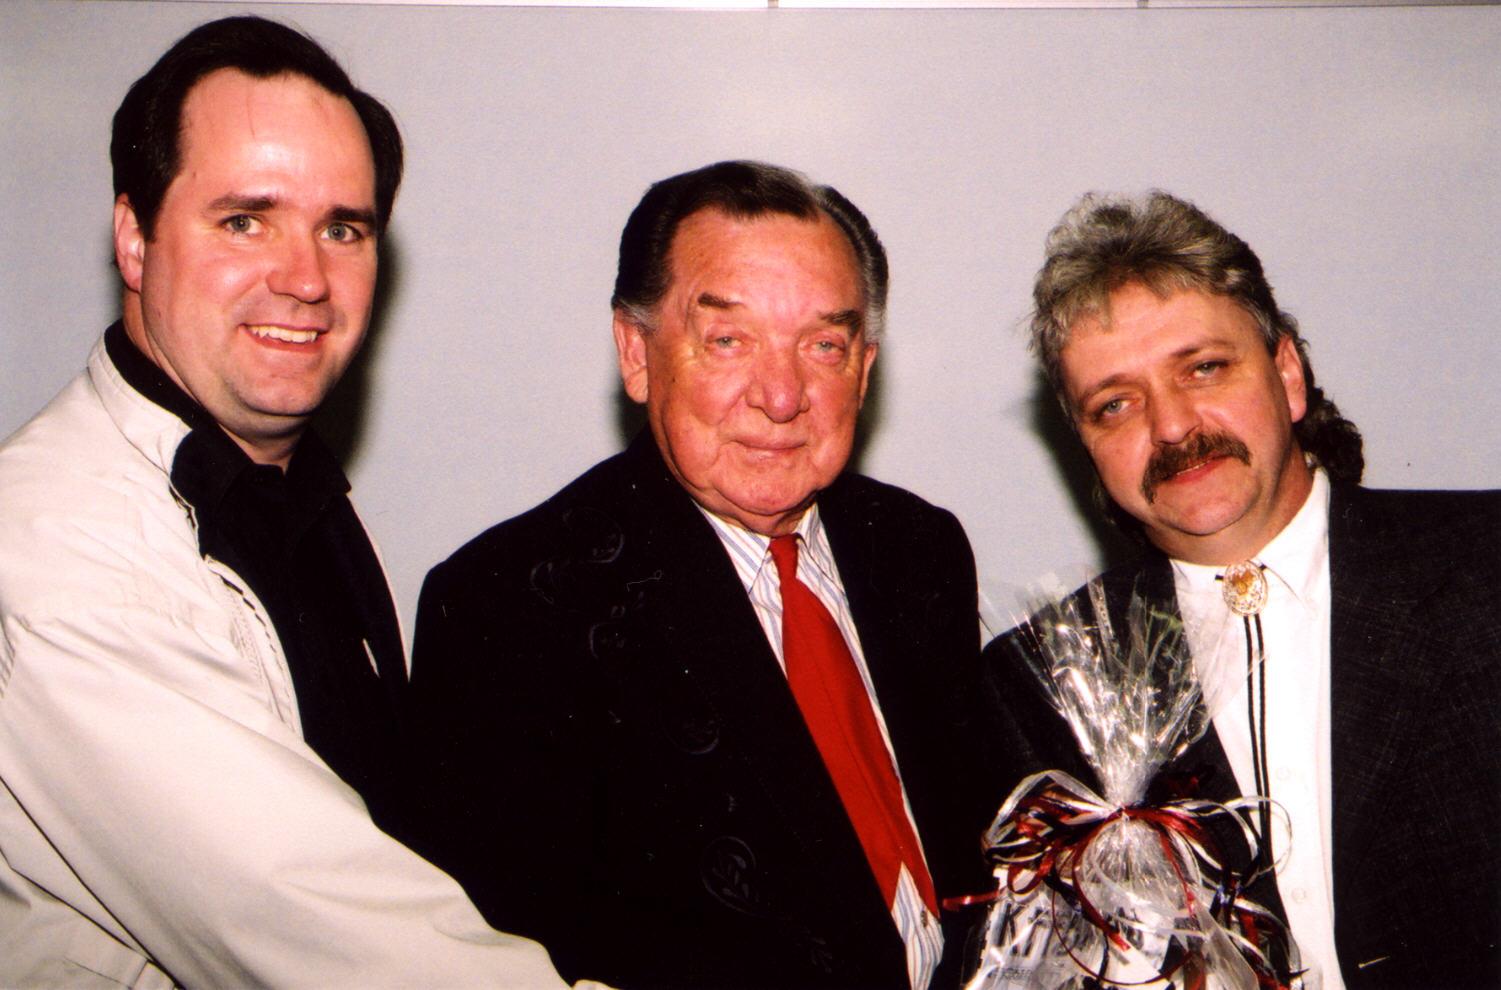 Bob Connell, Ray Price and David Grimes backstage at Melbourne